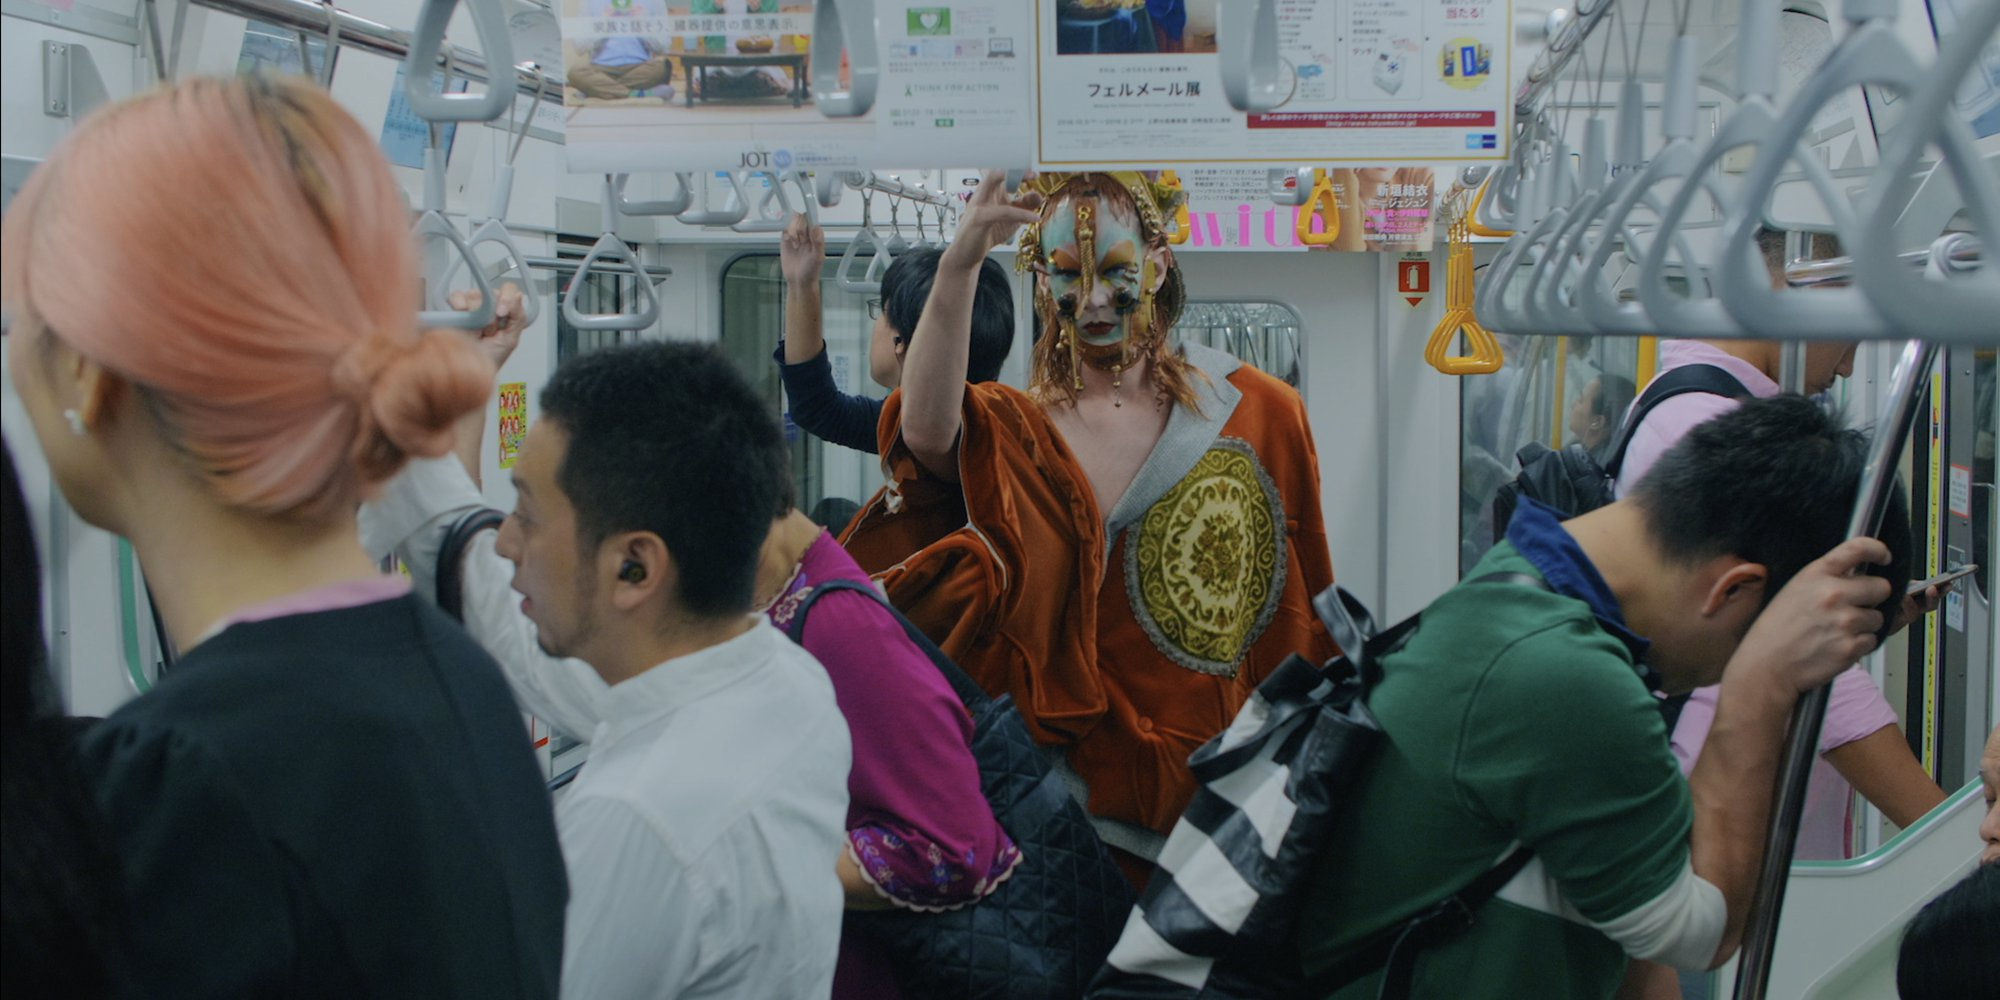 Lyle XOX in Japan Subway